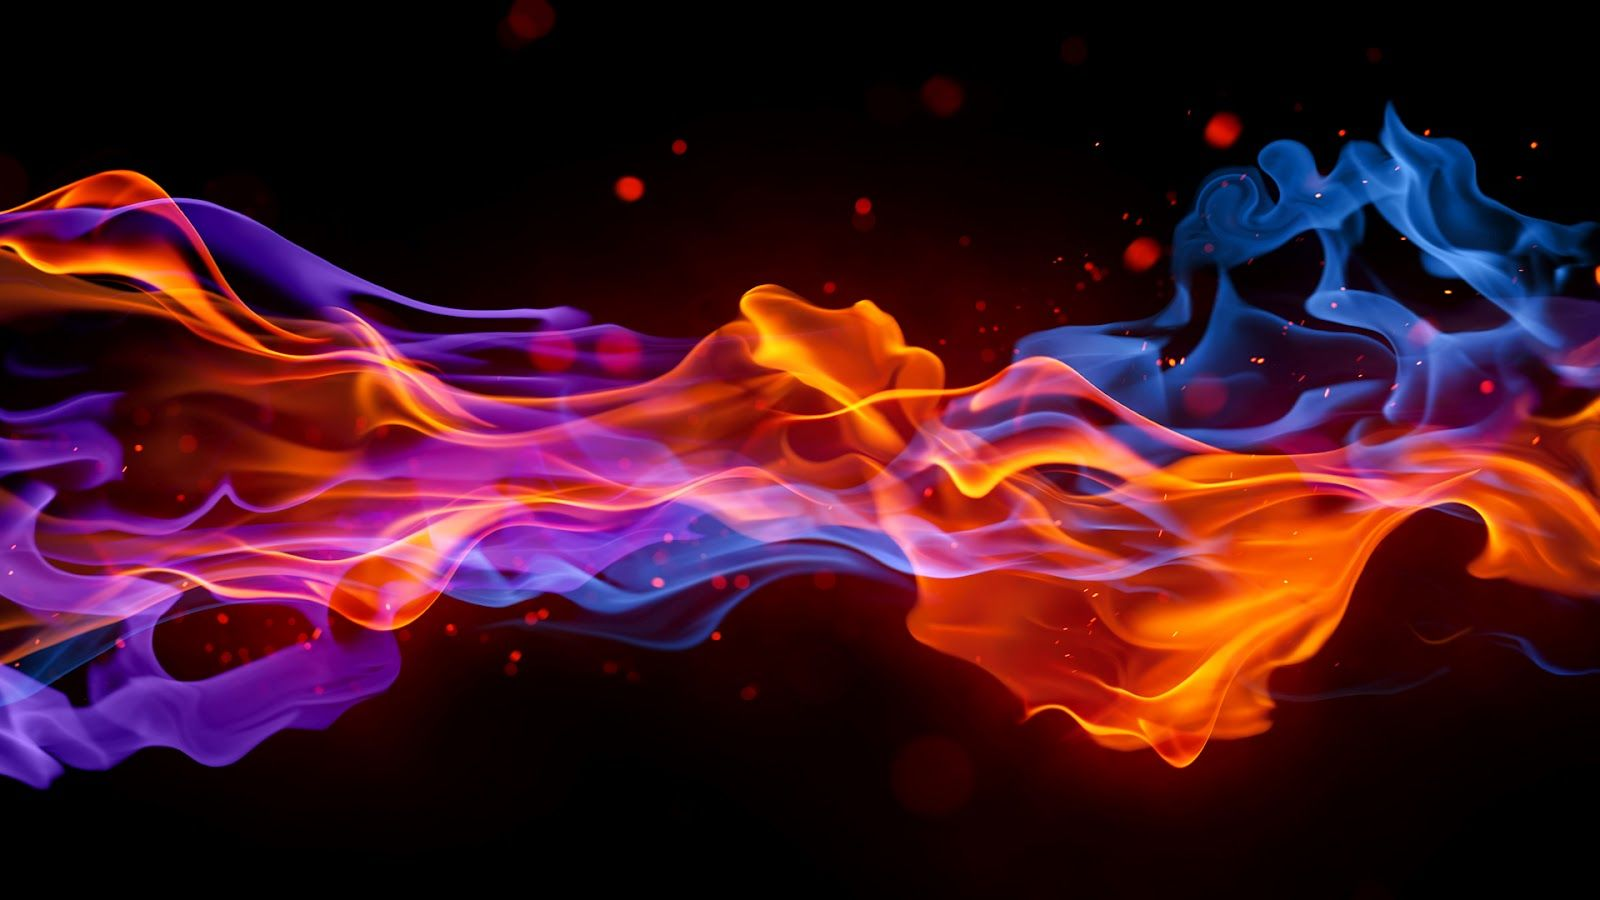 Abstract Smoke Color Wallpaper Desktop Backgrounds Find